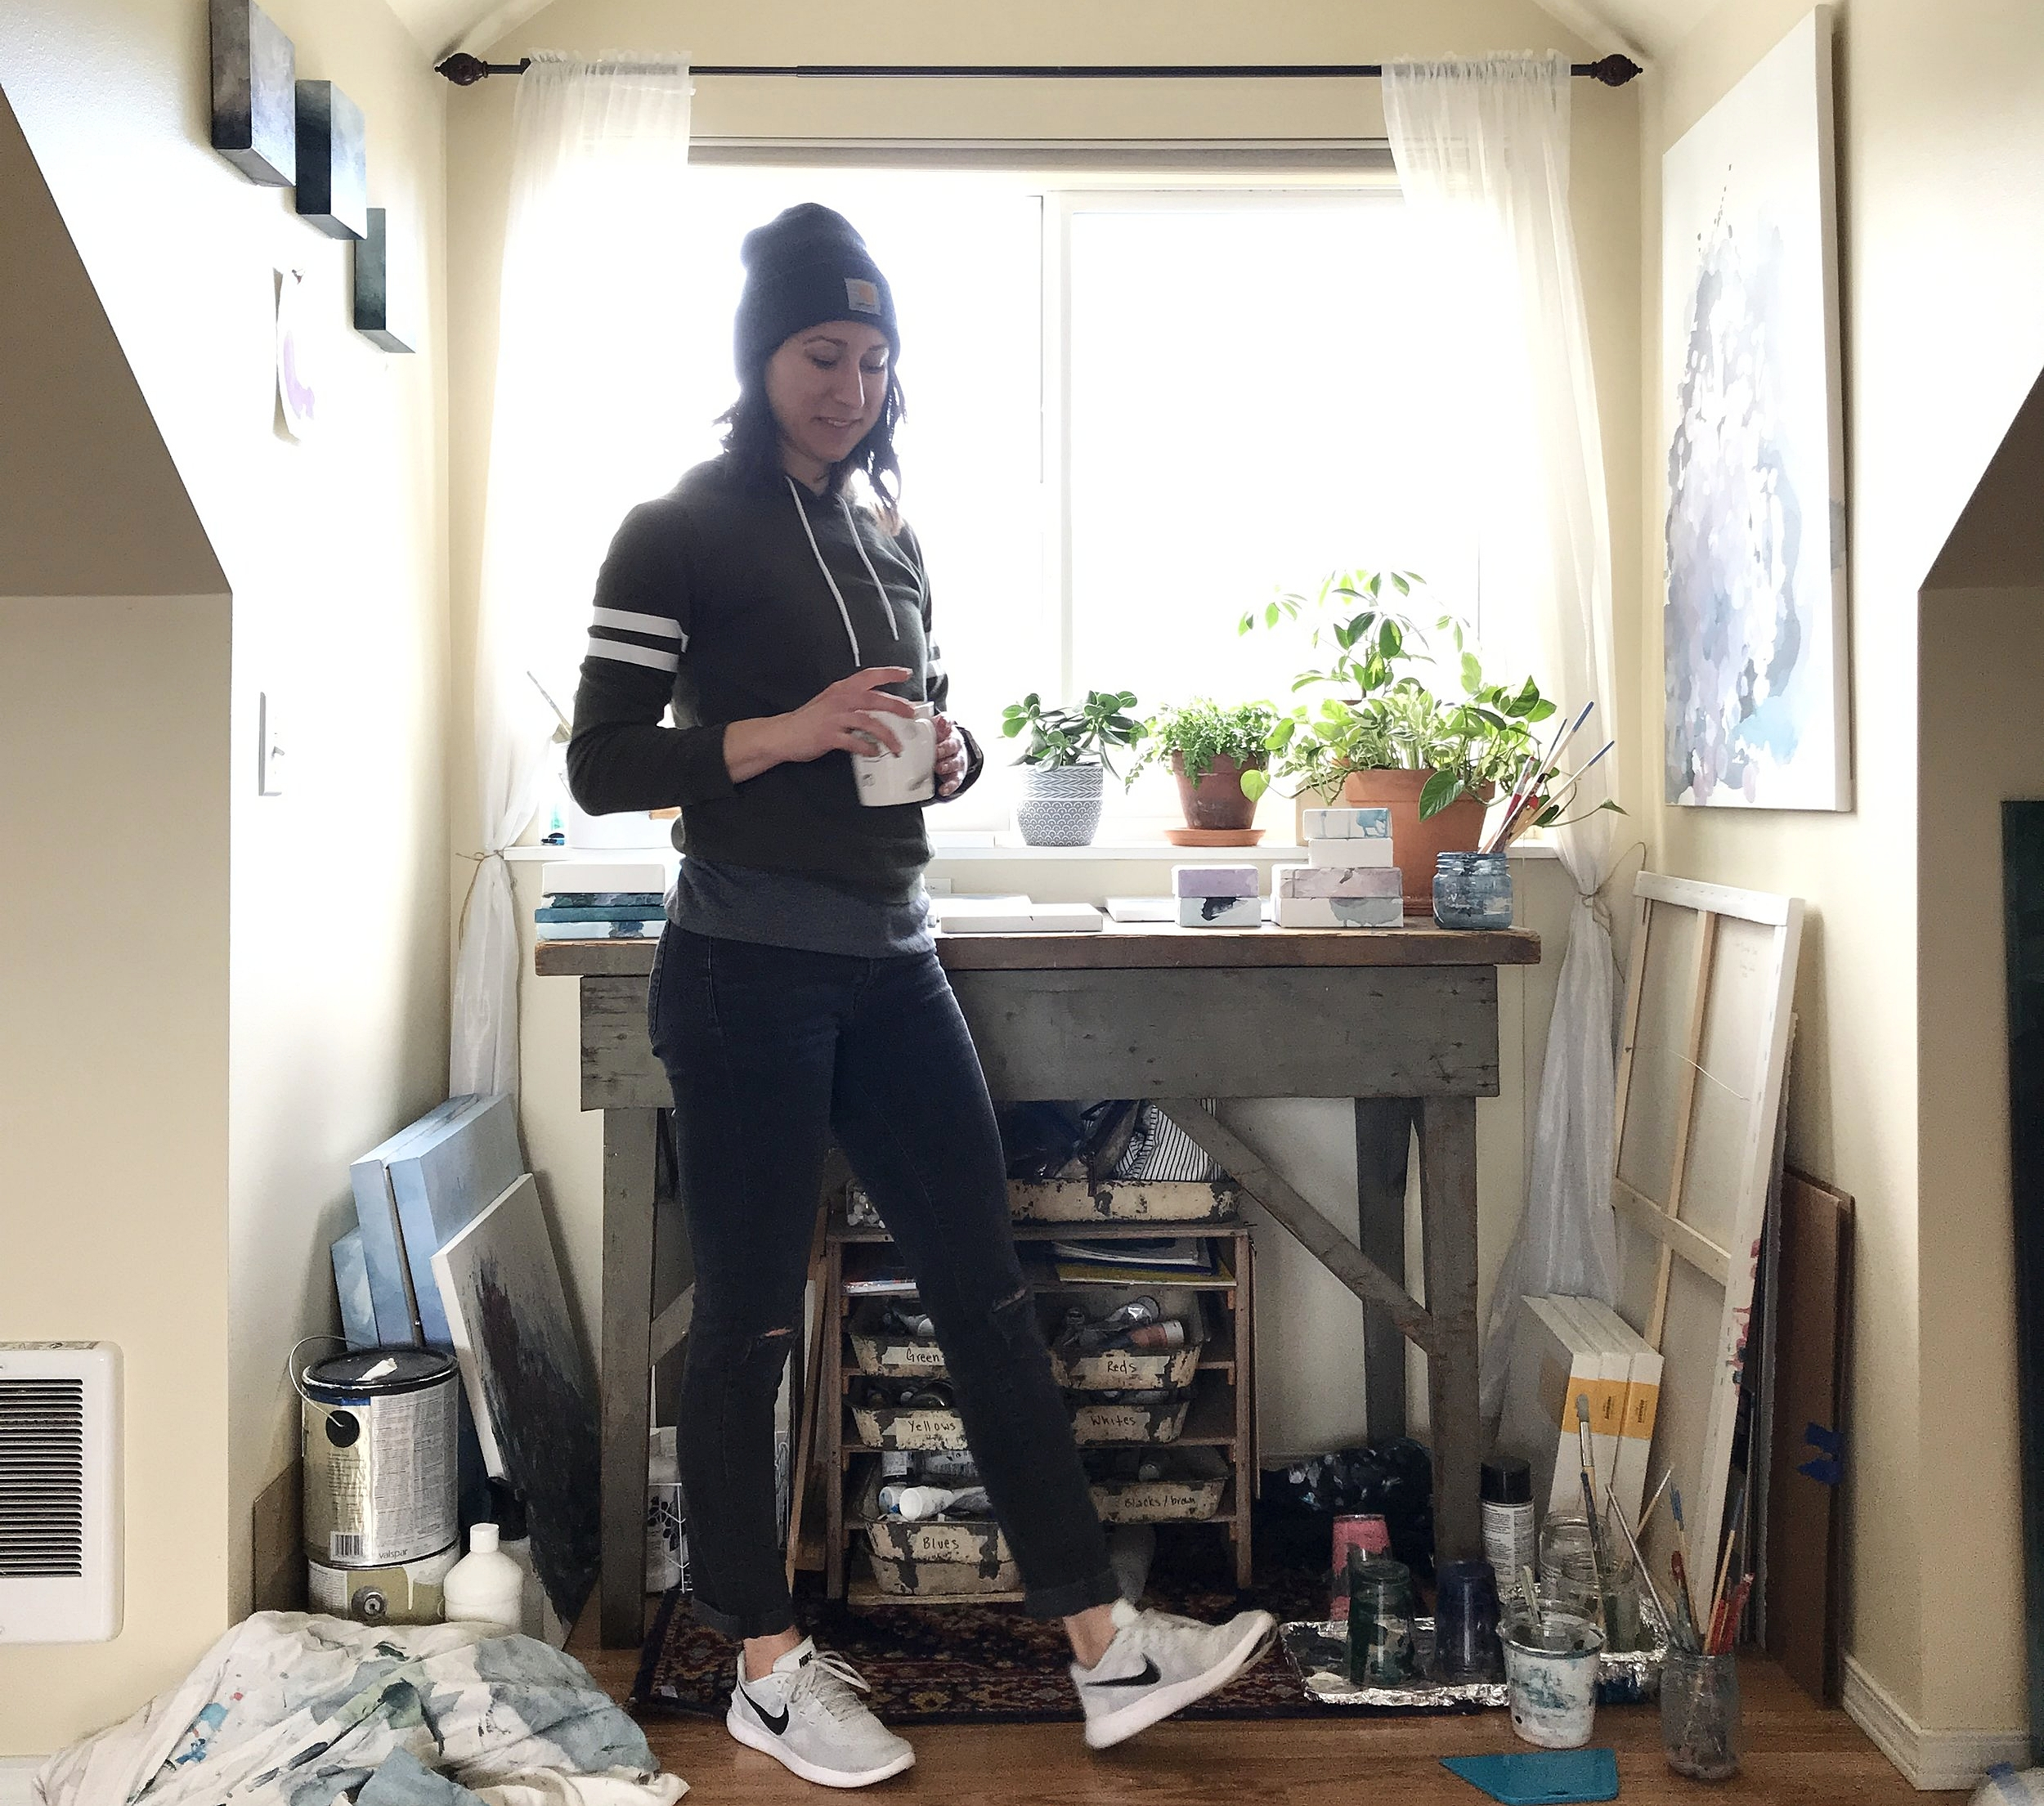 Working in my little studio nook. Ill cherish all of these days here. - Kendra Castillo